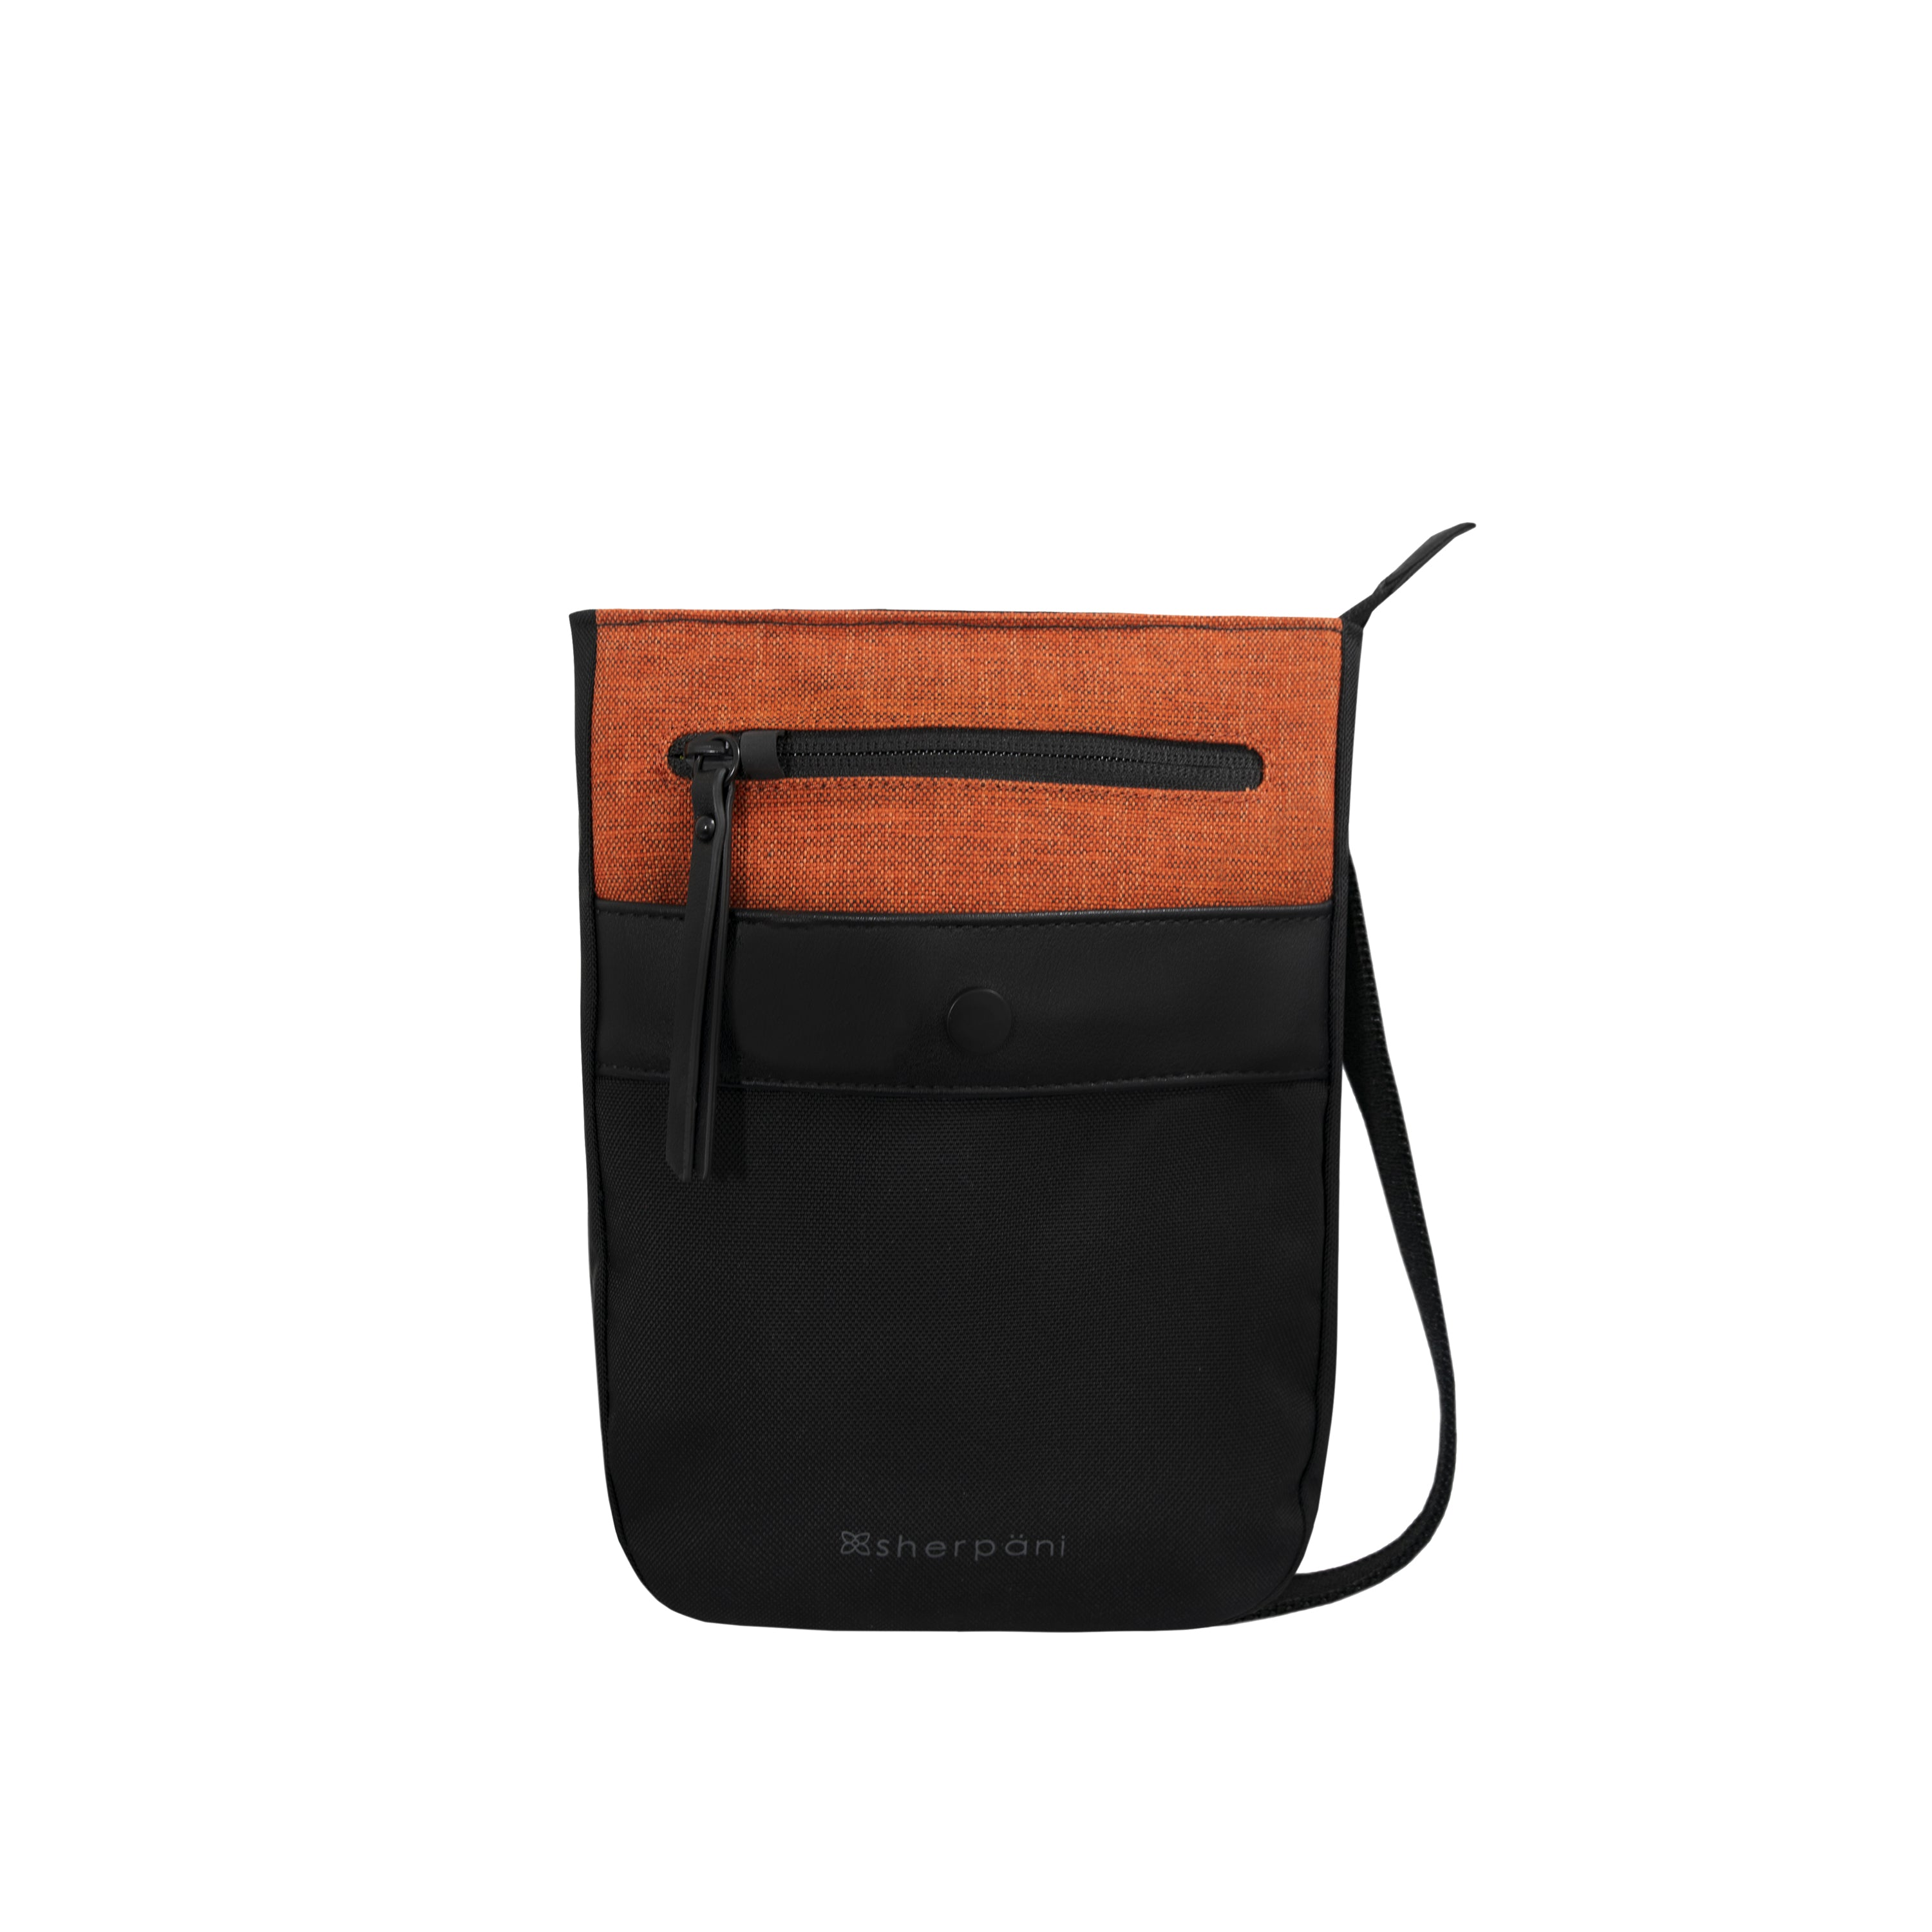 Orange Anti-theft Crossbody (front view) with anti-theft features